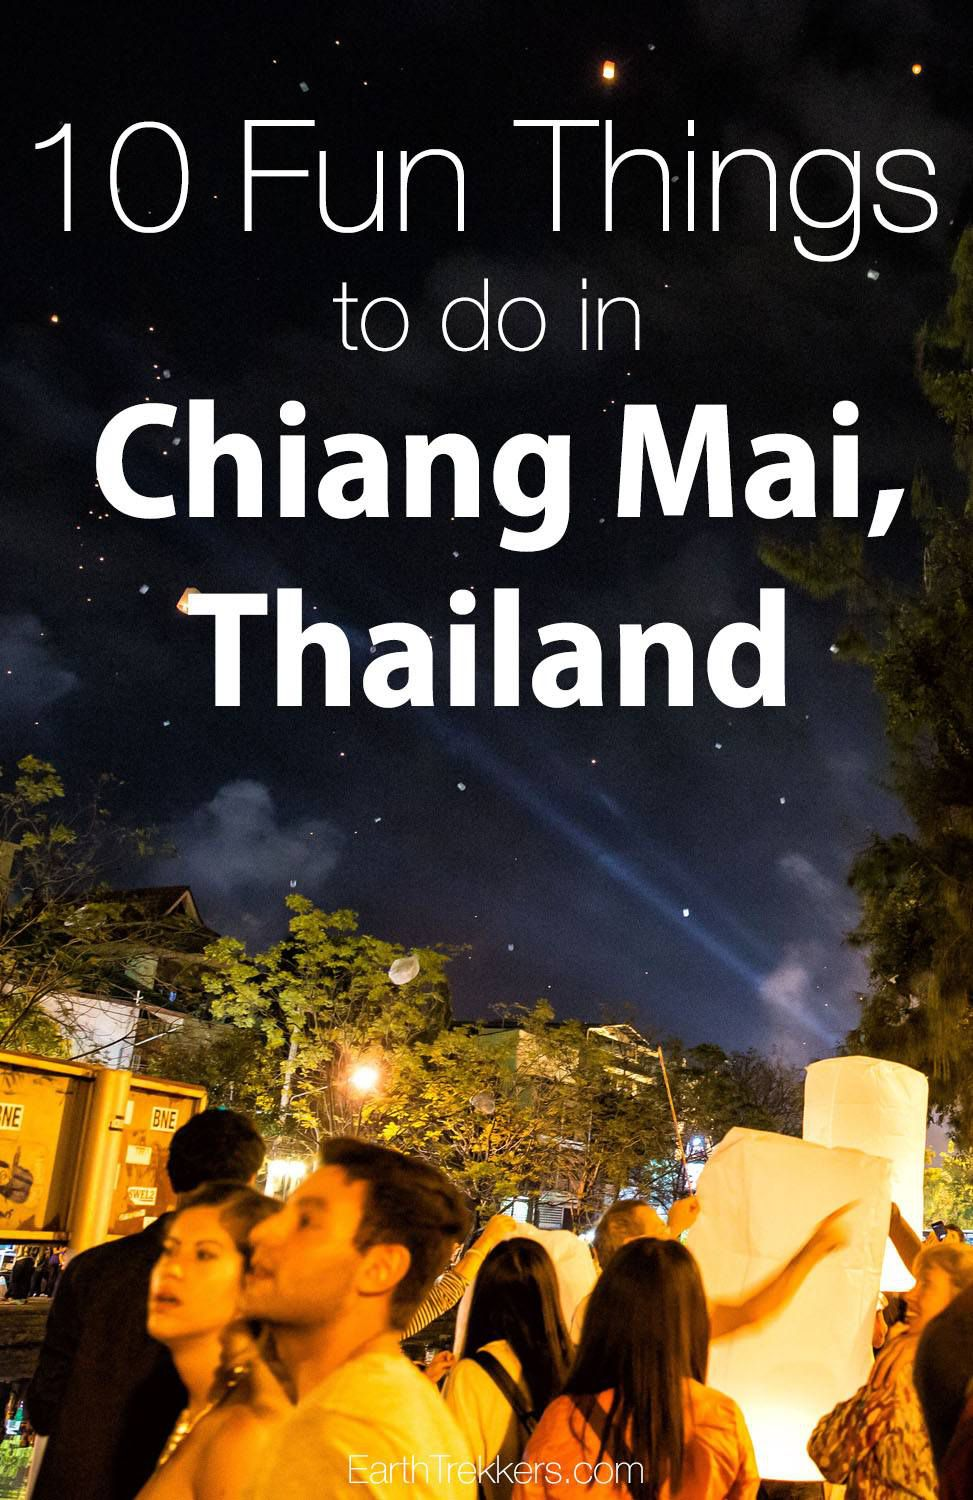 10 fun things to do in Chiang Mai Thailand